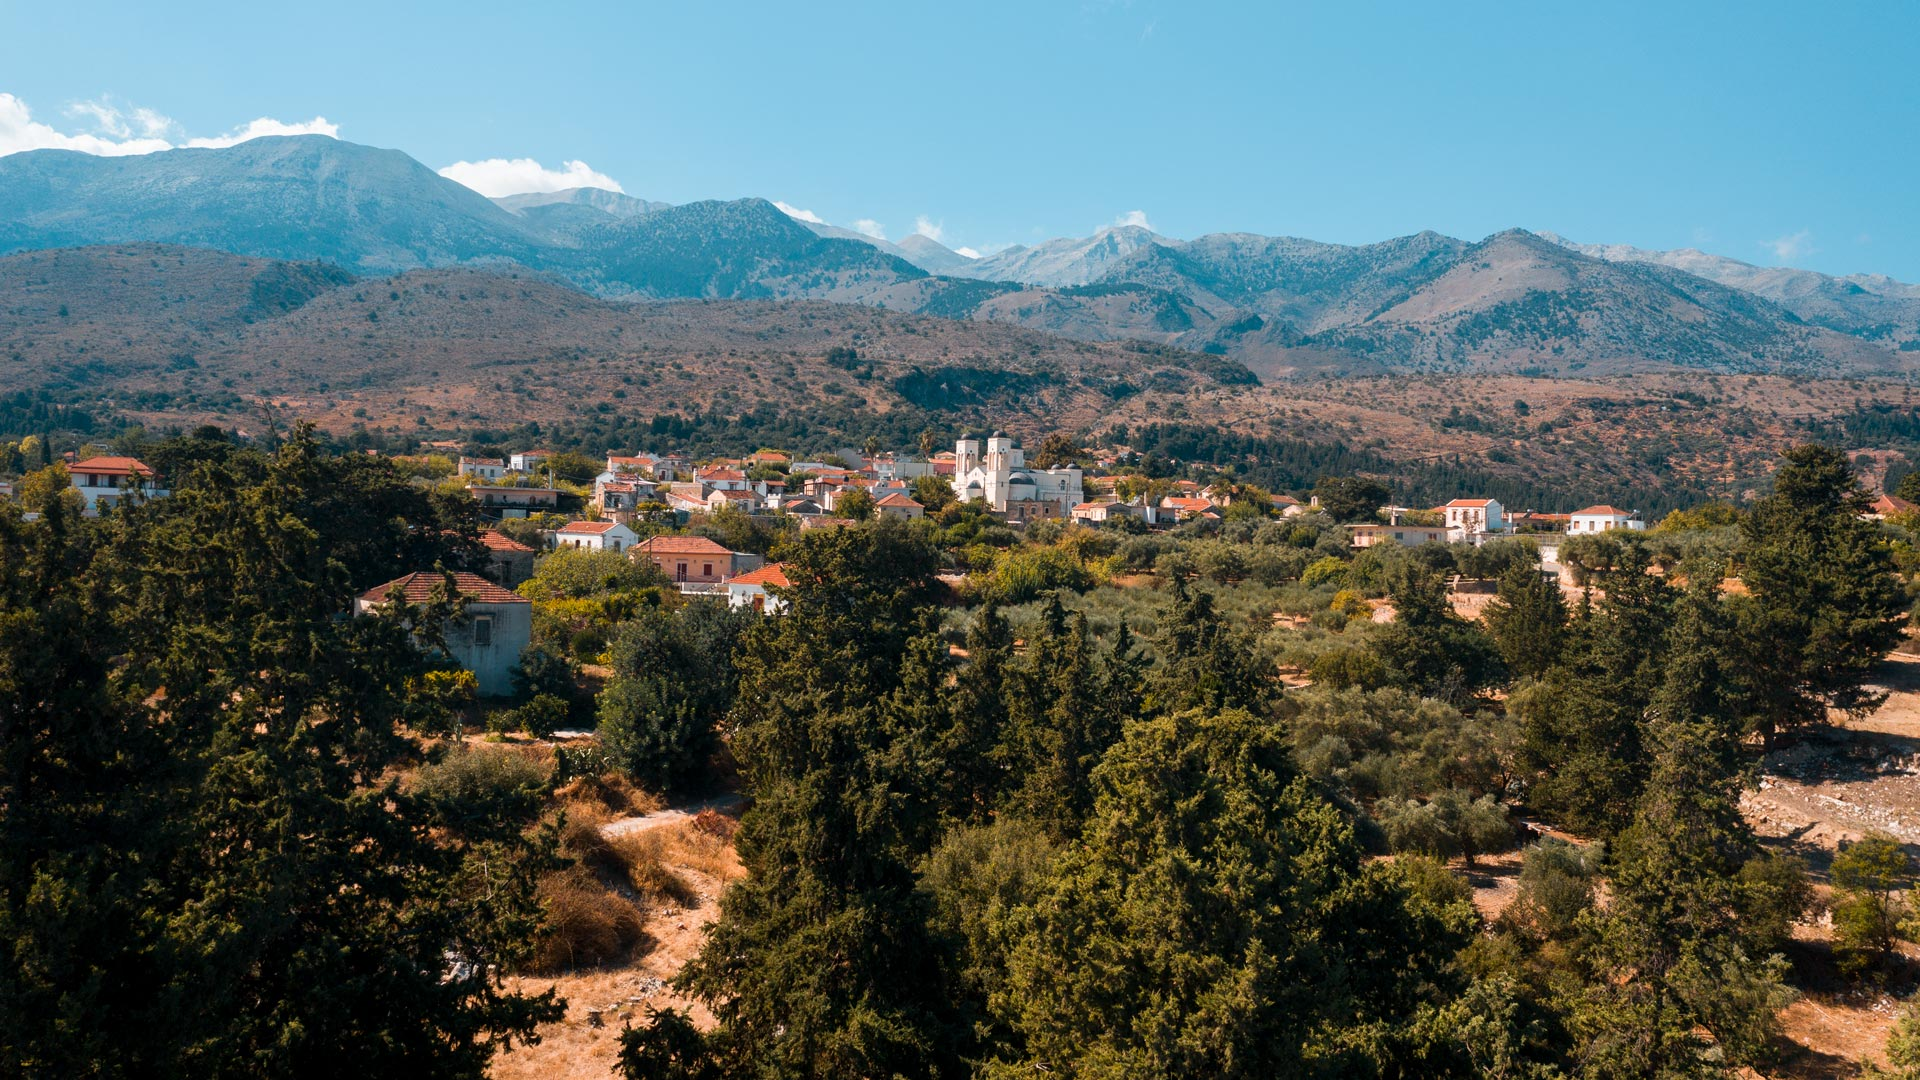 Built on the foothills of the White Mountains, at an altitude of 220m, Fres is surrounded by olives groves and vineyards